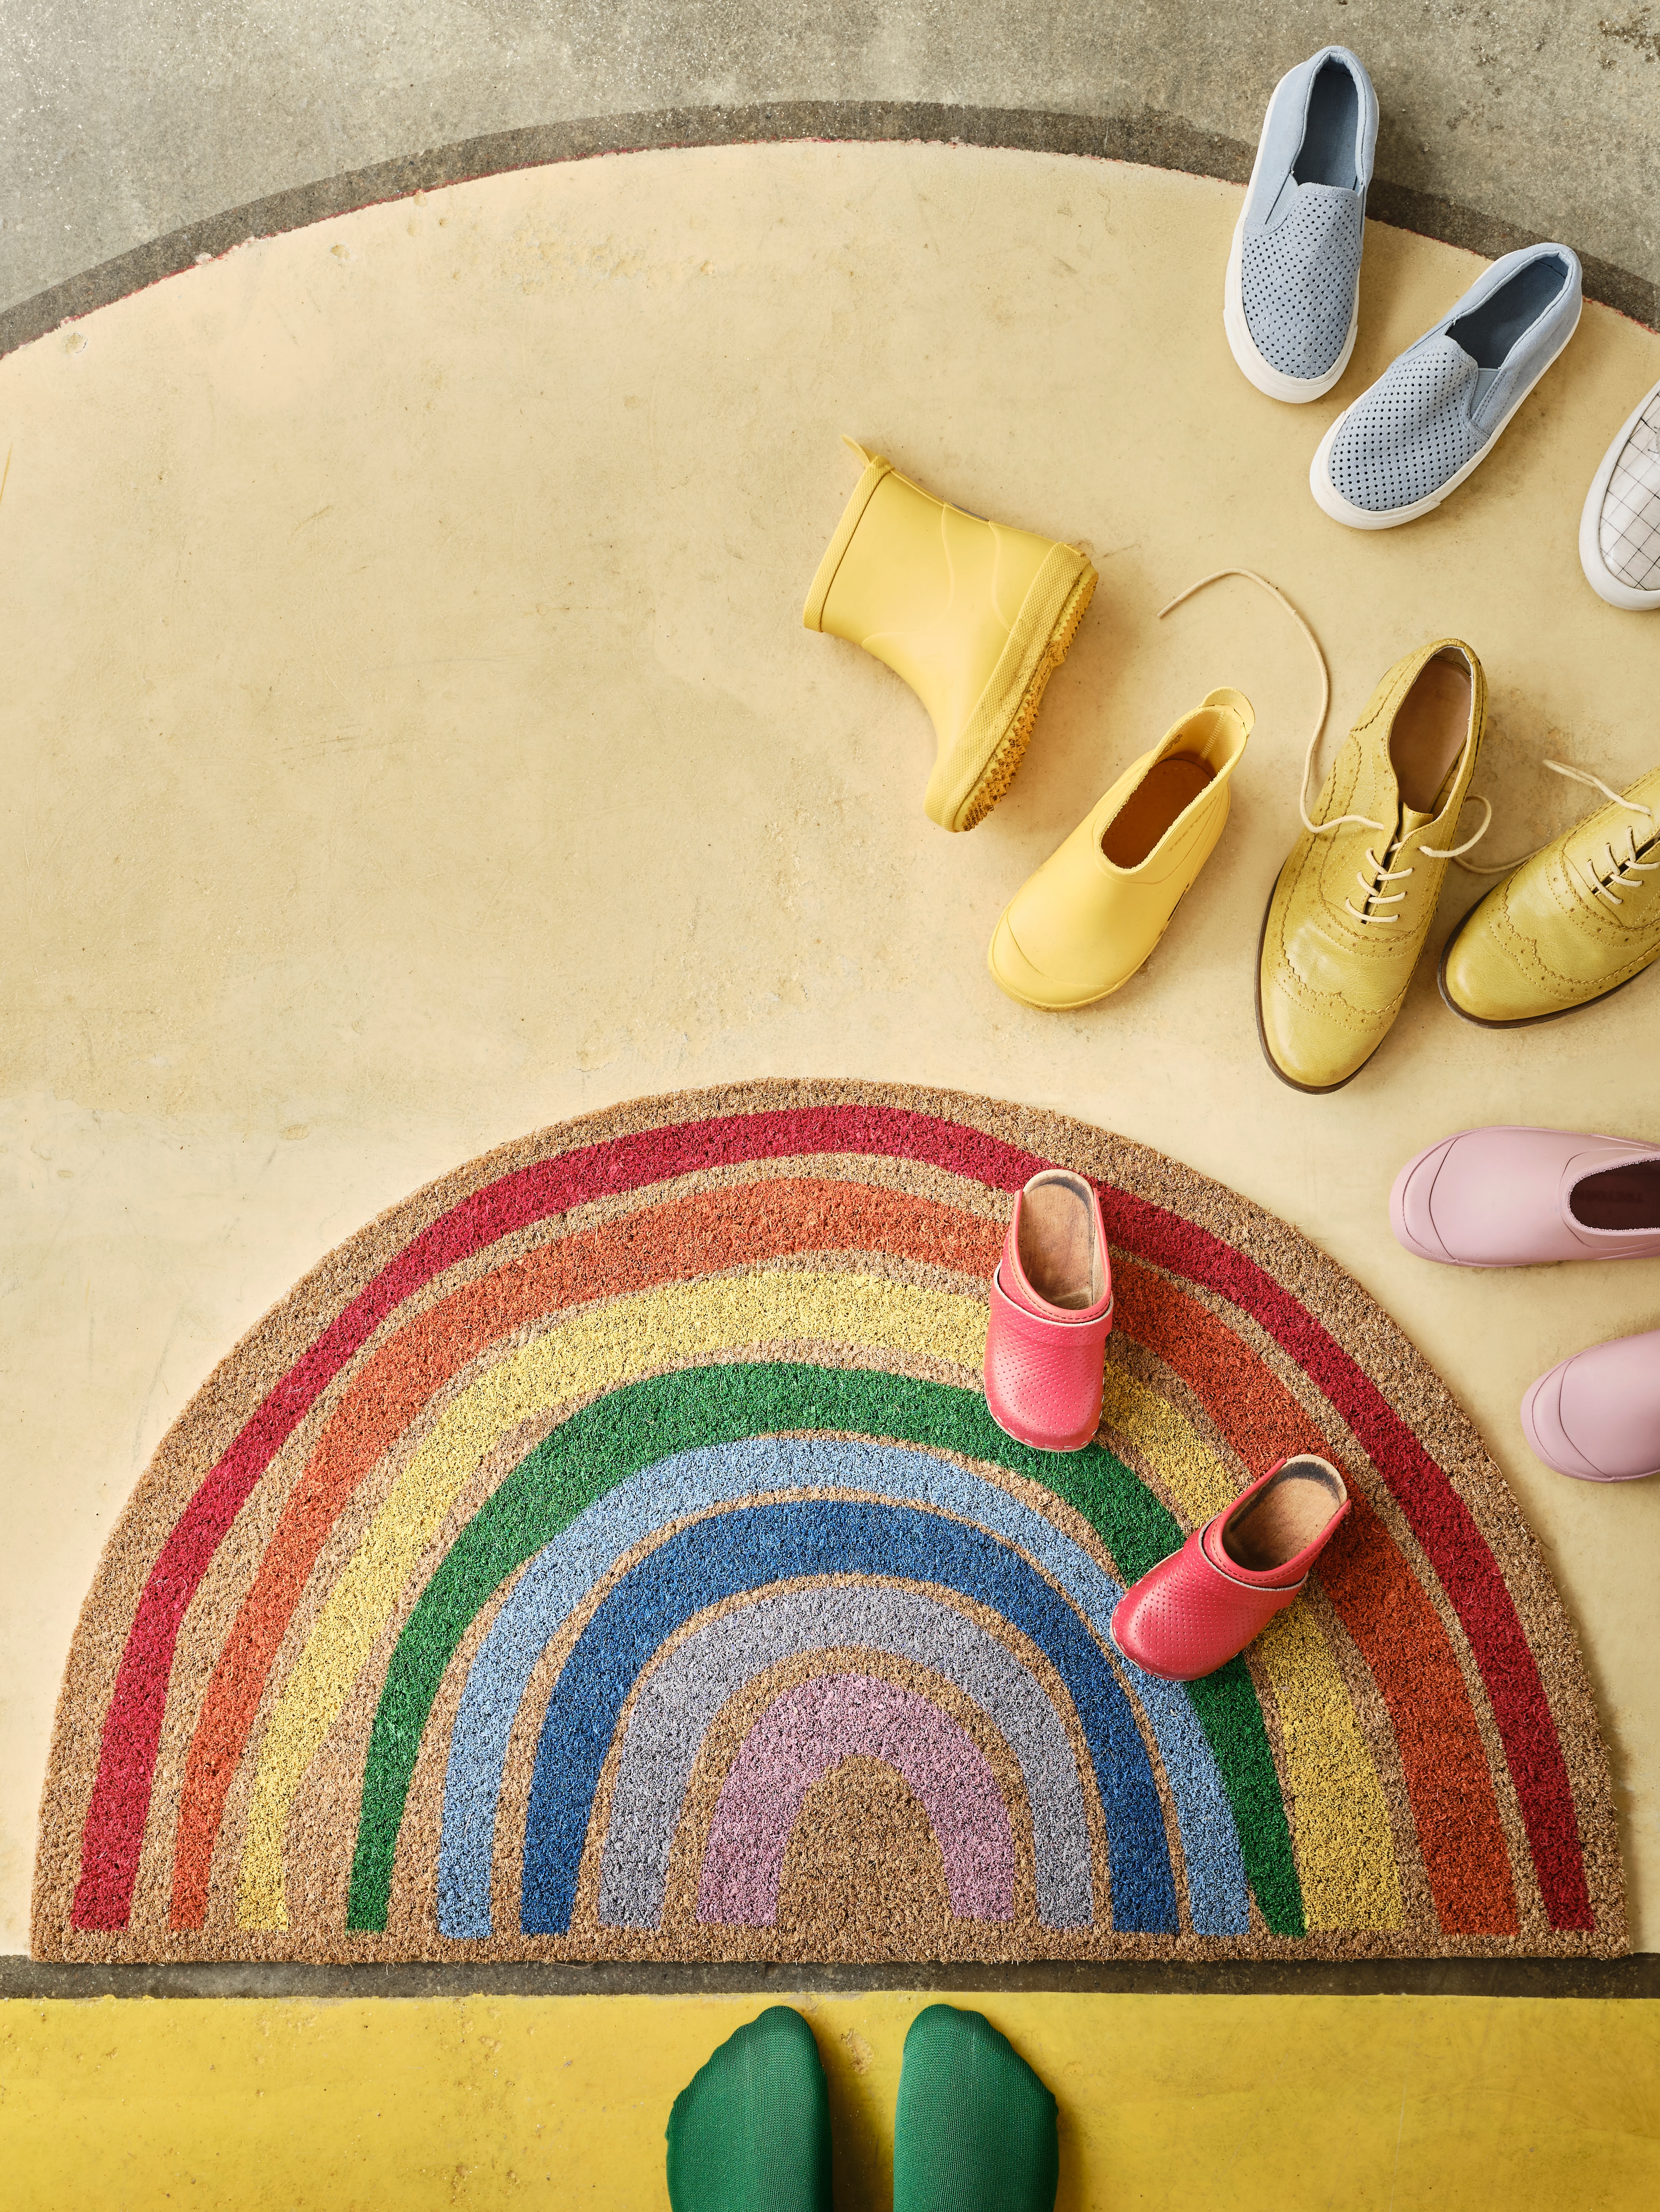 PILLEMARK door mat with a rainbow pattern lying on a yellow floor with colourful shoes and a pair of feet with green socks.